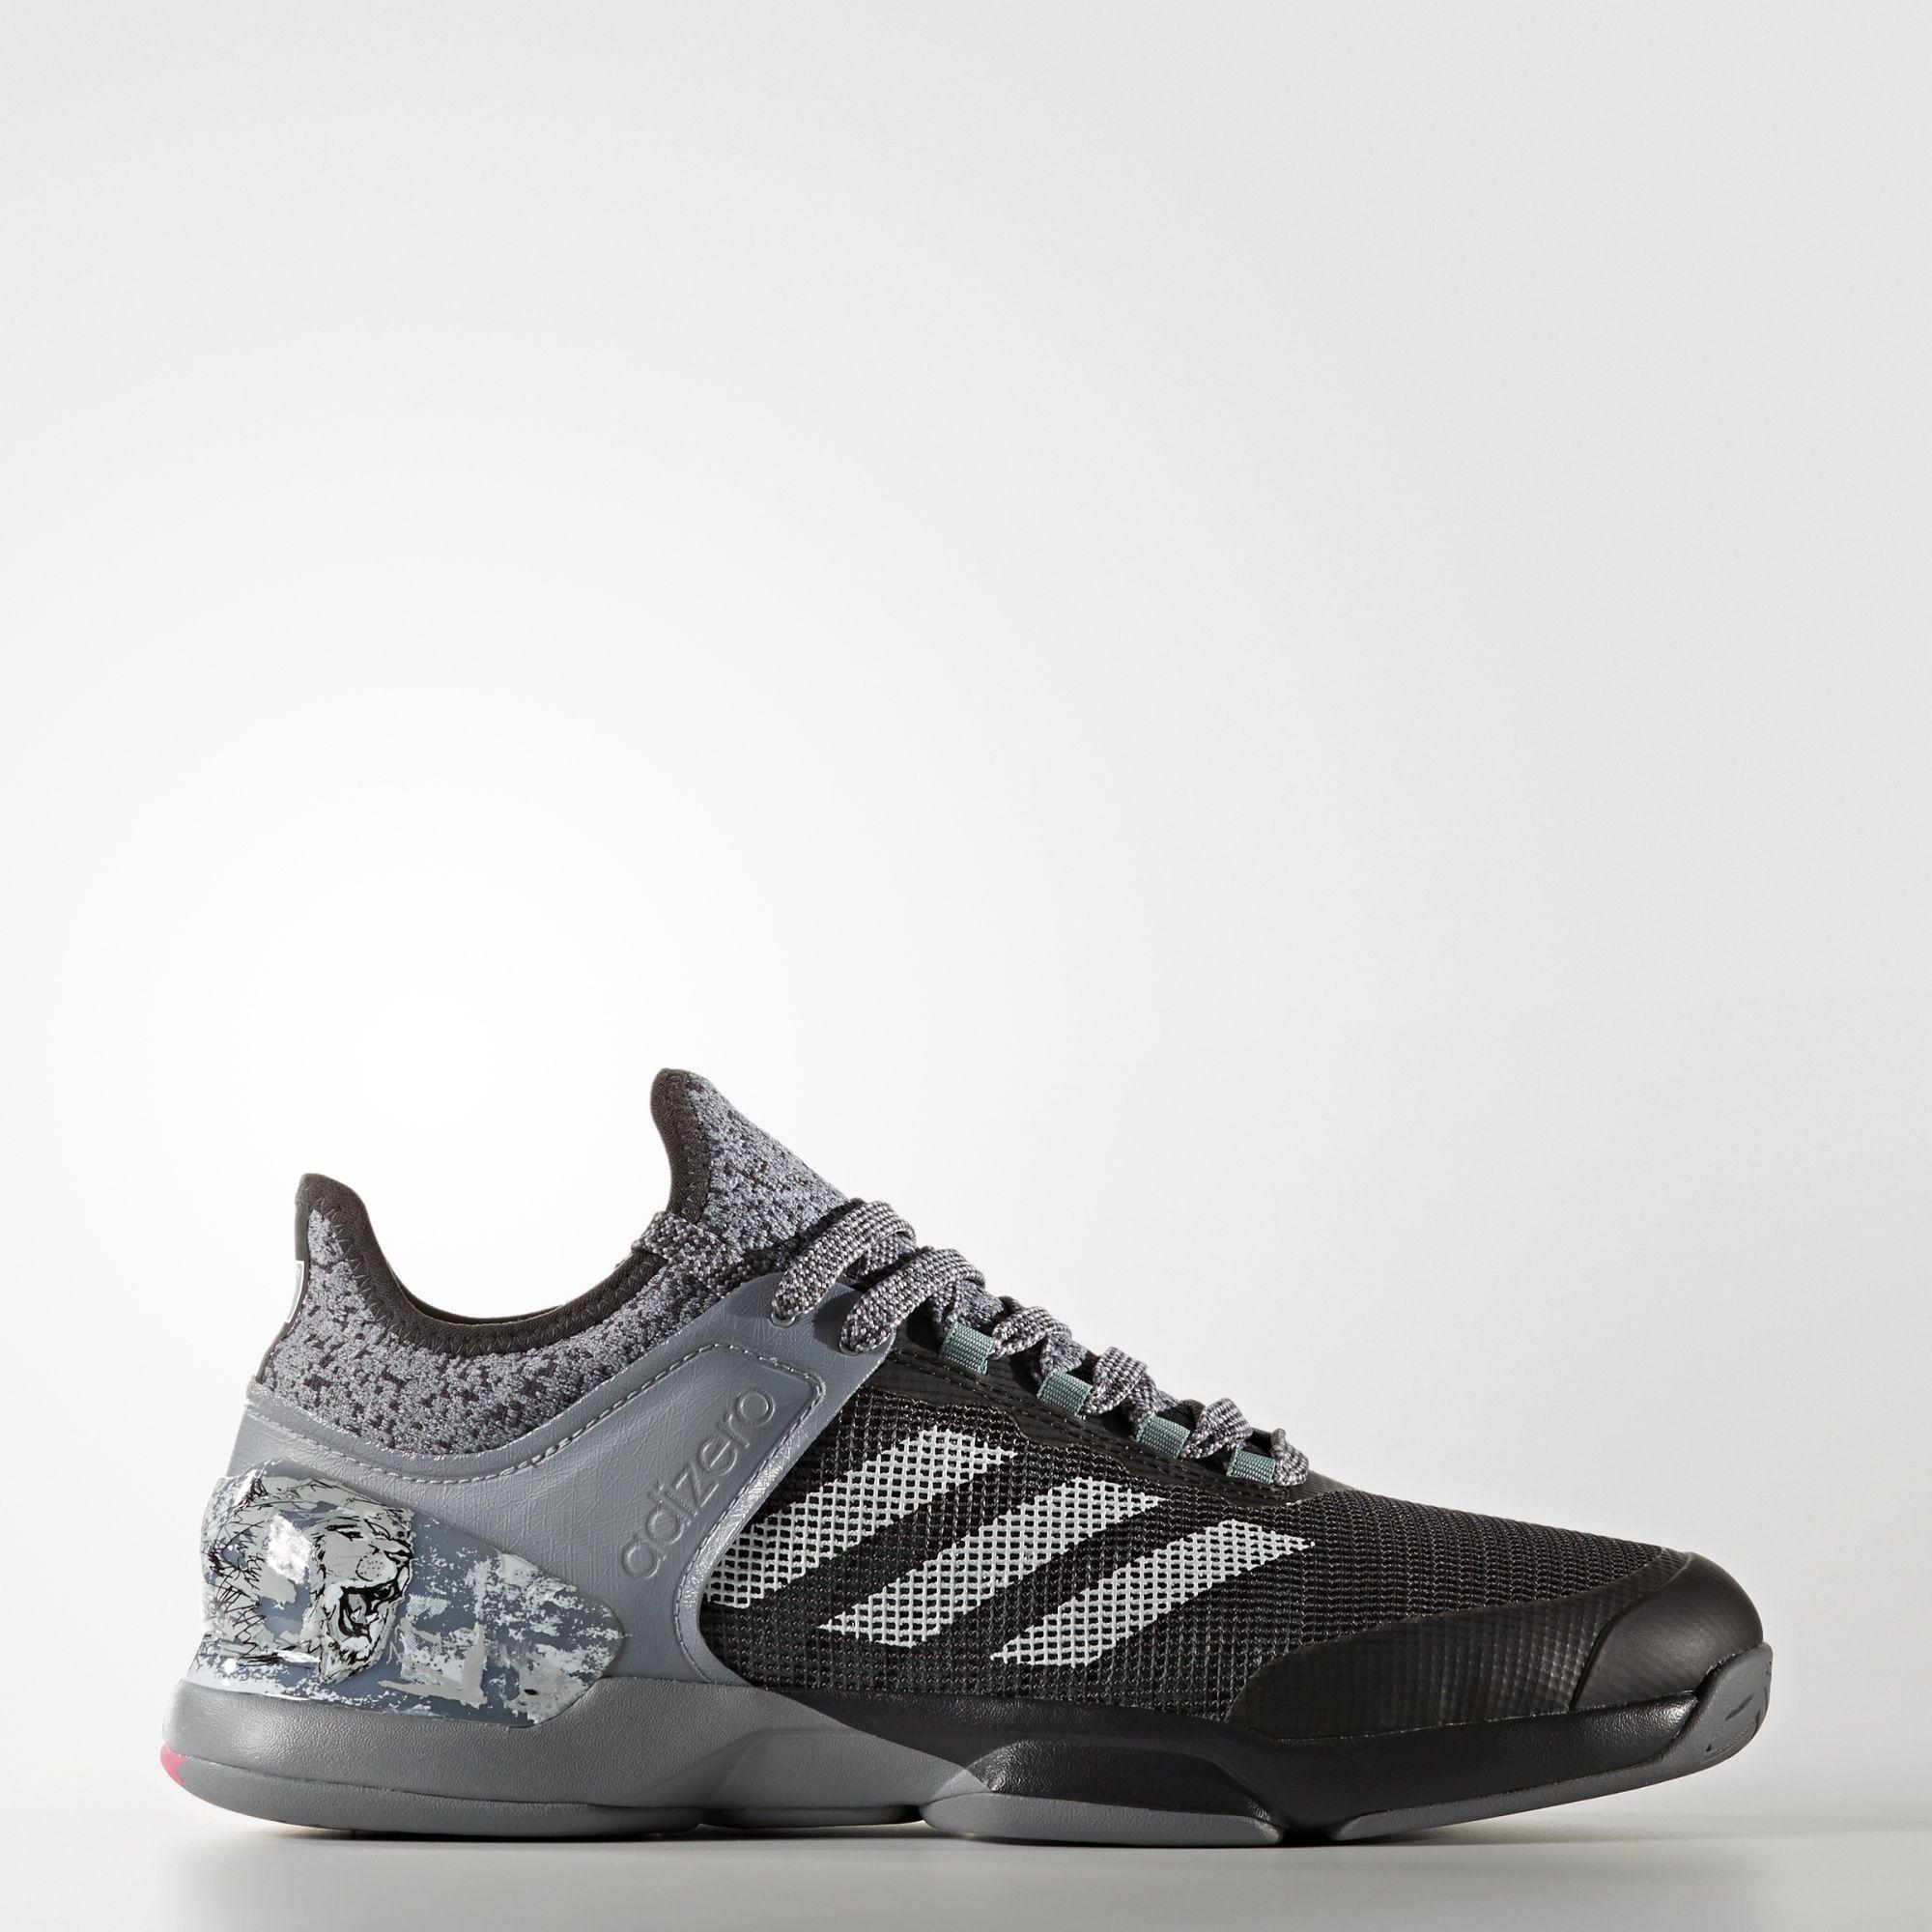 Adidas UK Shop - Adidas adizero Ubersonic 2.0 Street Art Shoes (Grey) for Men